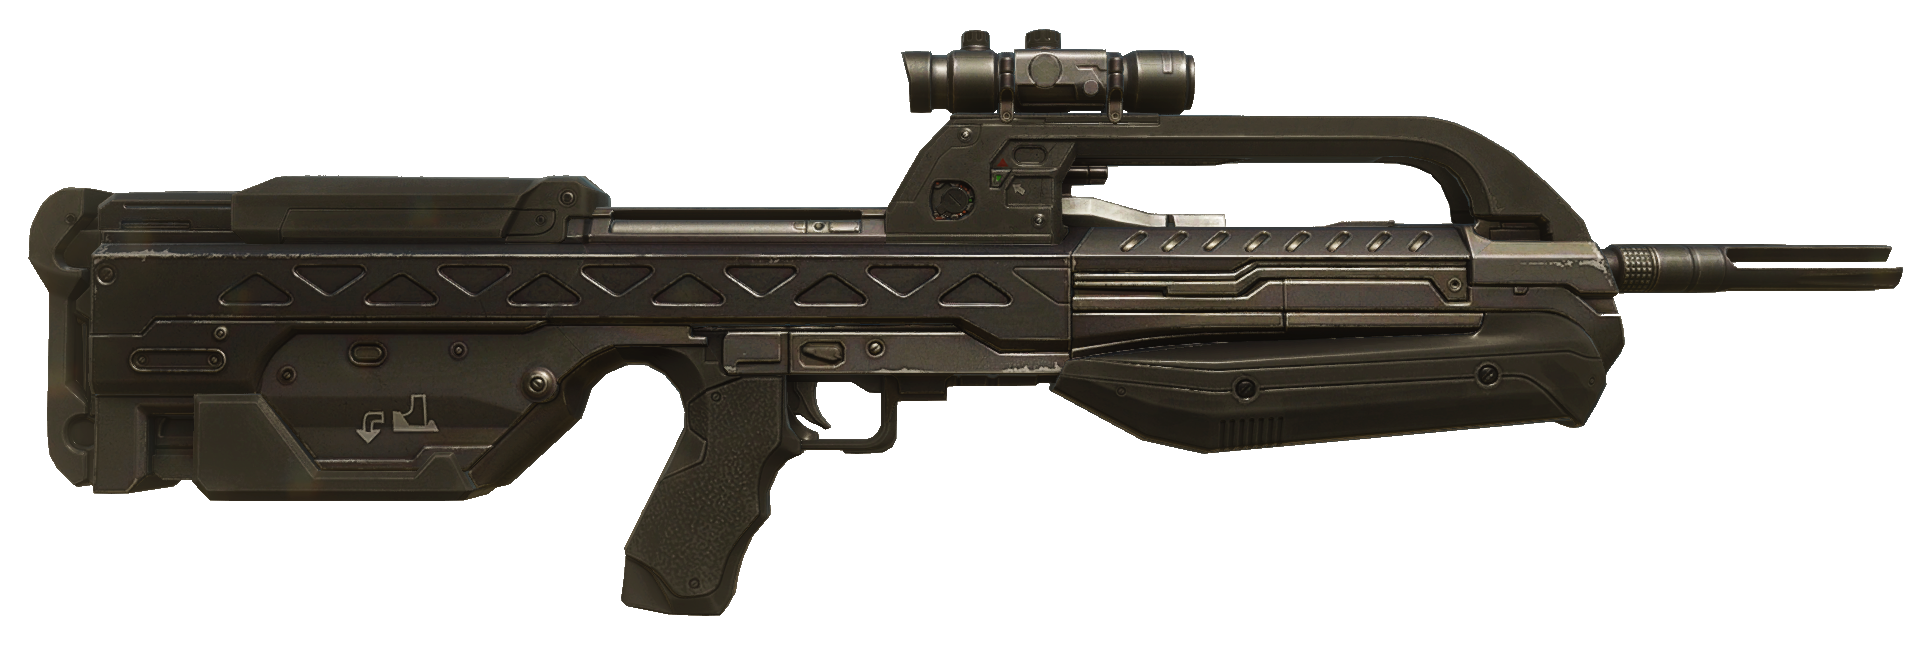 Transparent rifle anniversary. Image result for halo